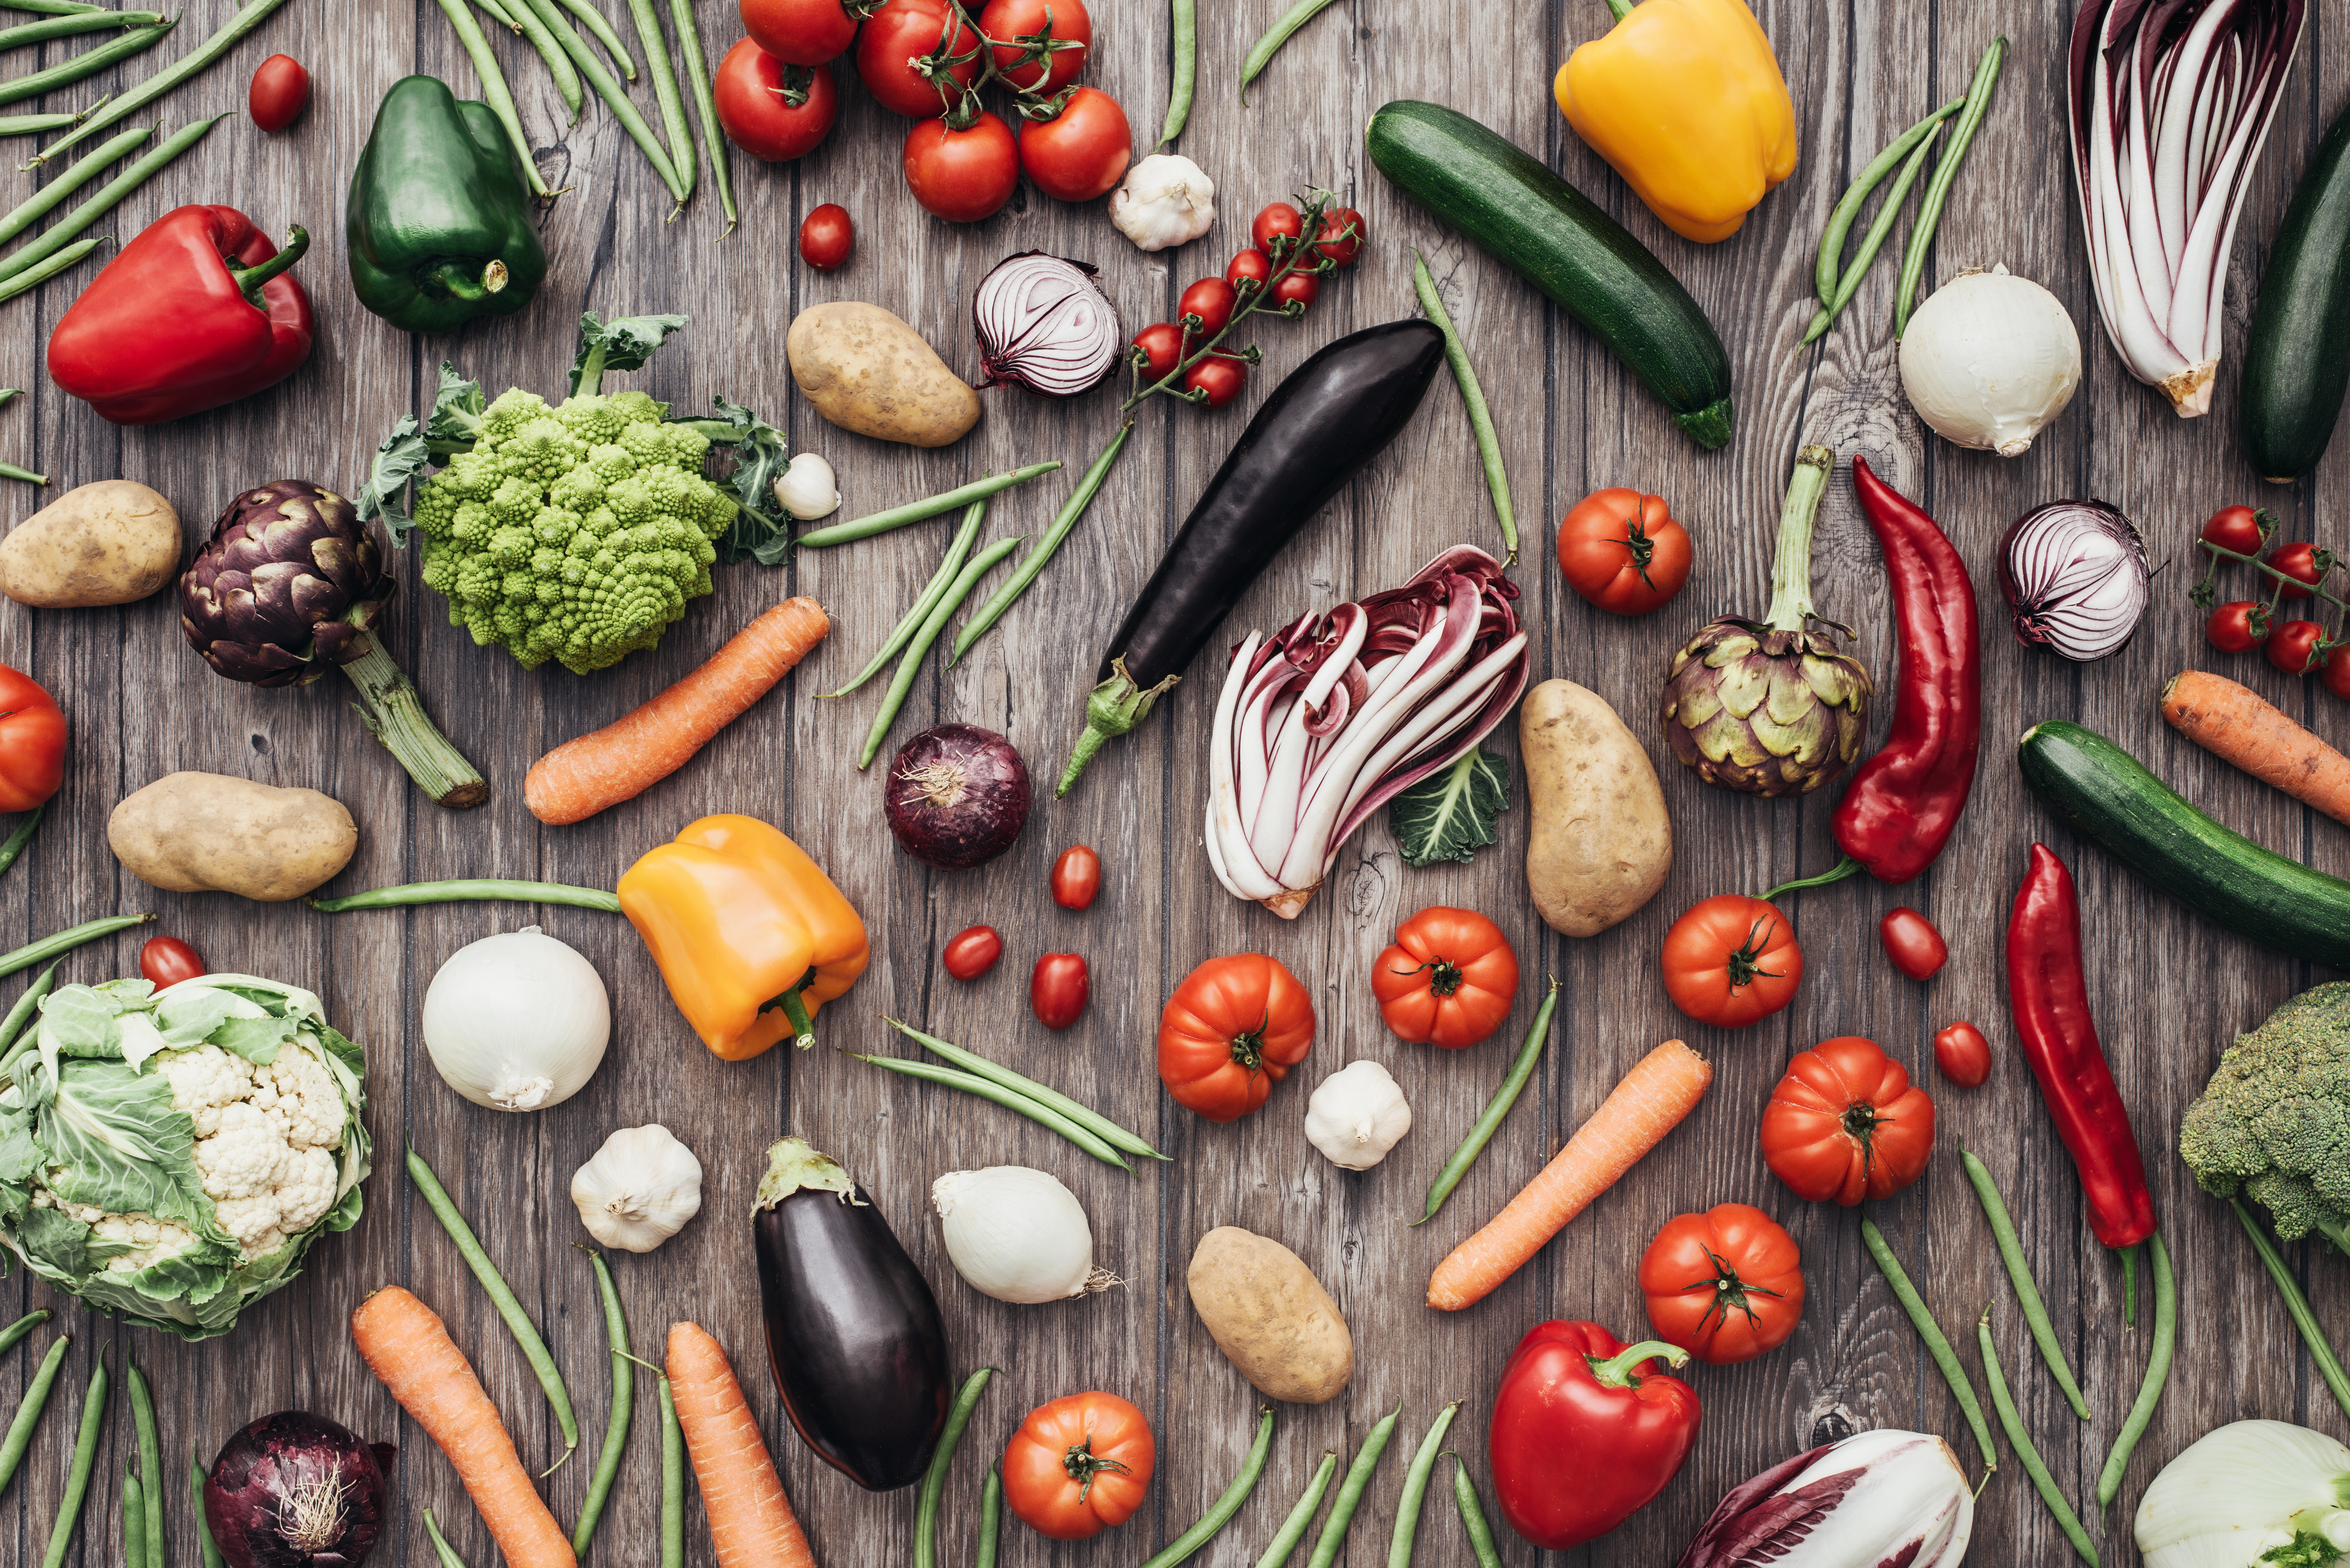 WHAT IS THE WHOLE 30 AND WHY IS IT TRENDING?